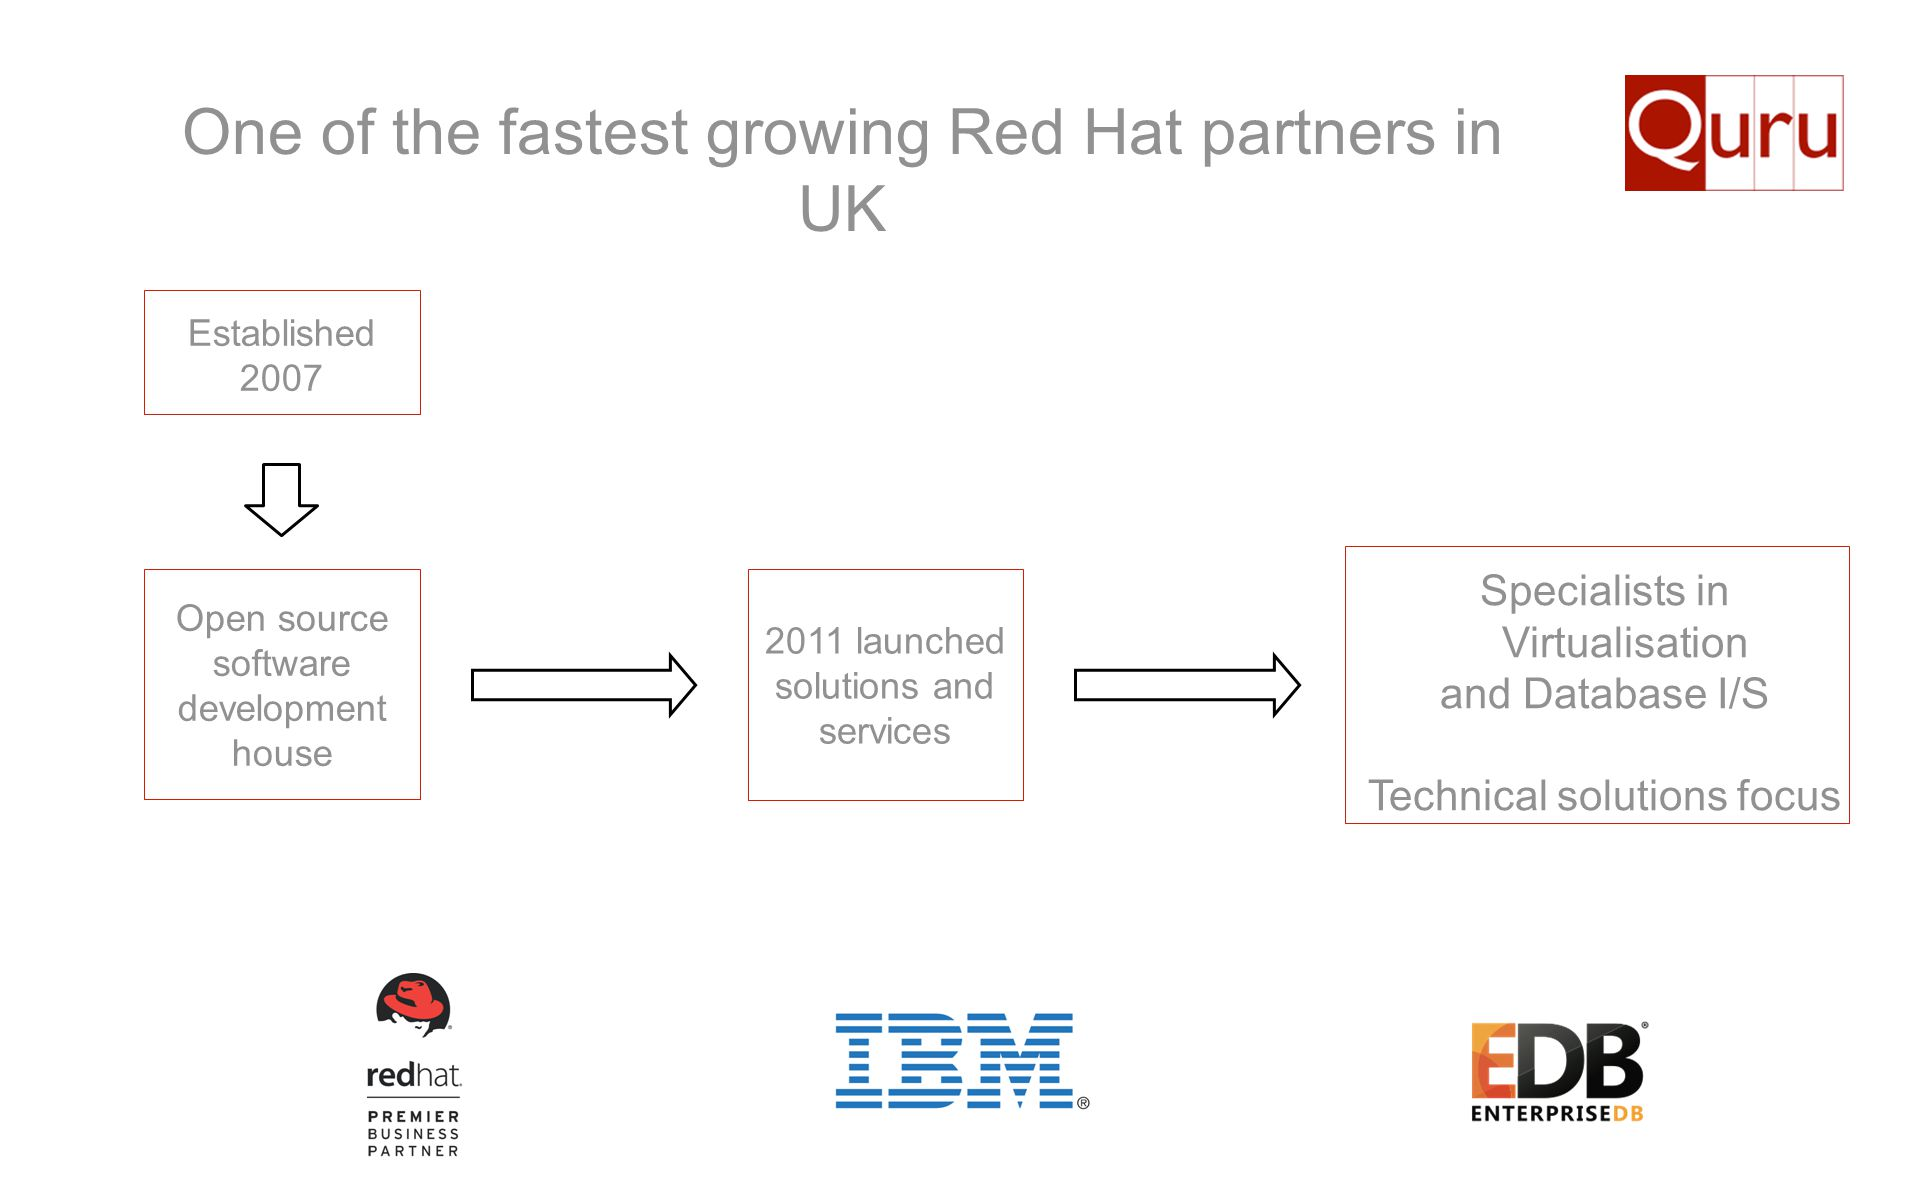 One of the fastest growing Red Hat partners in UK